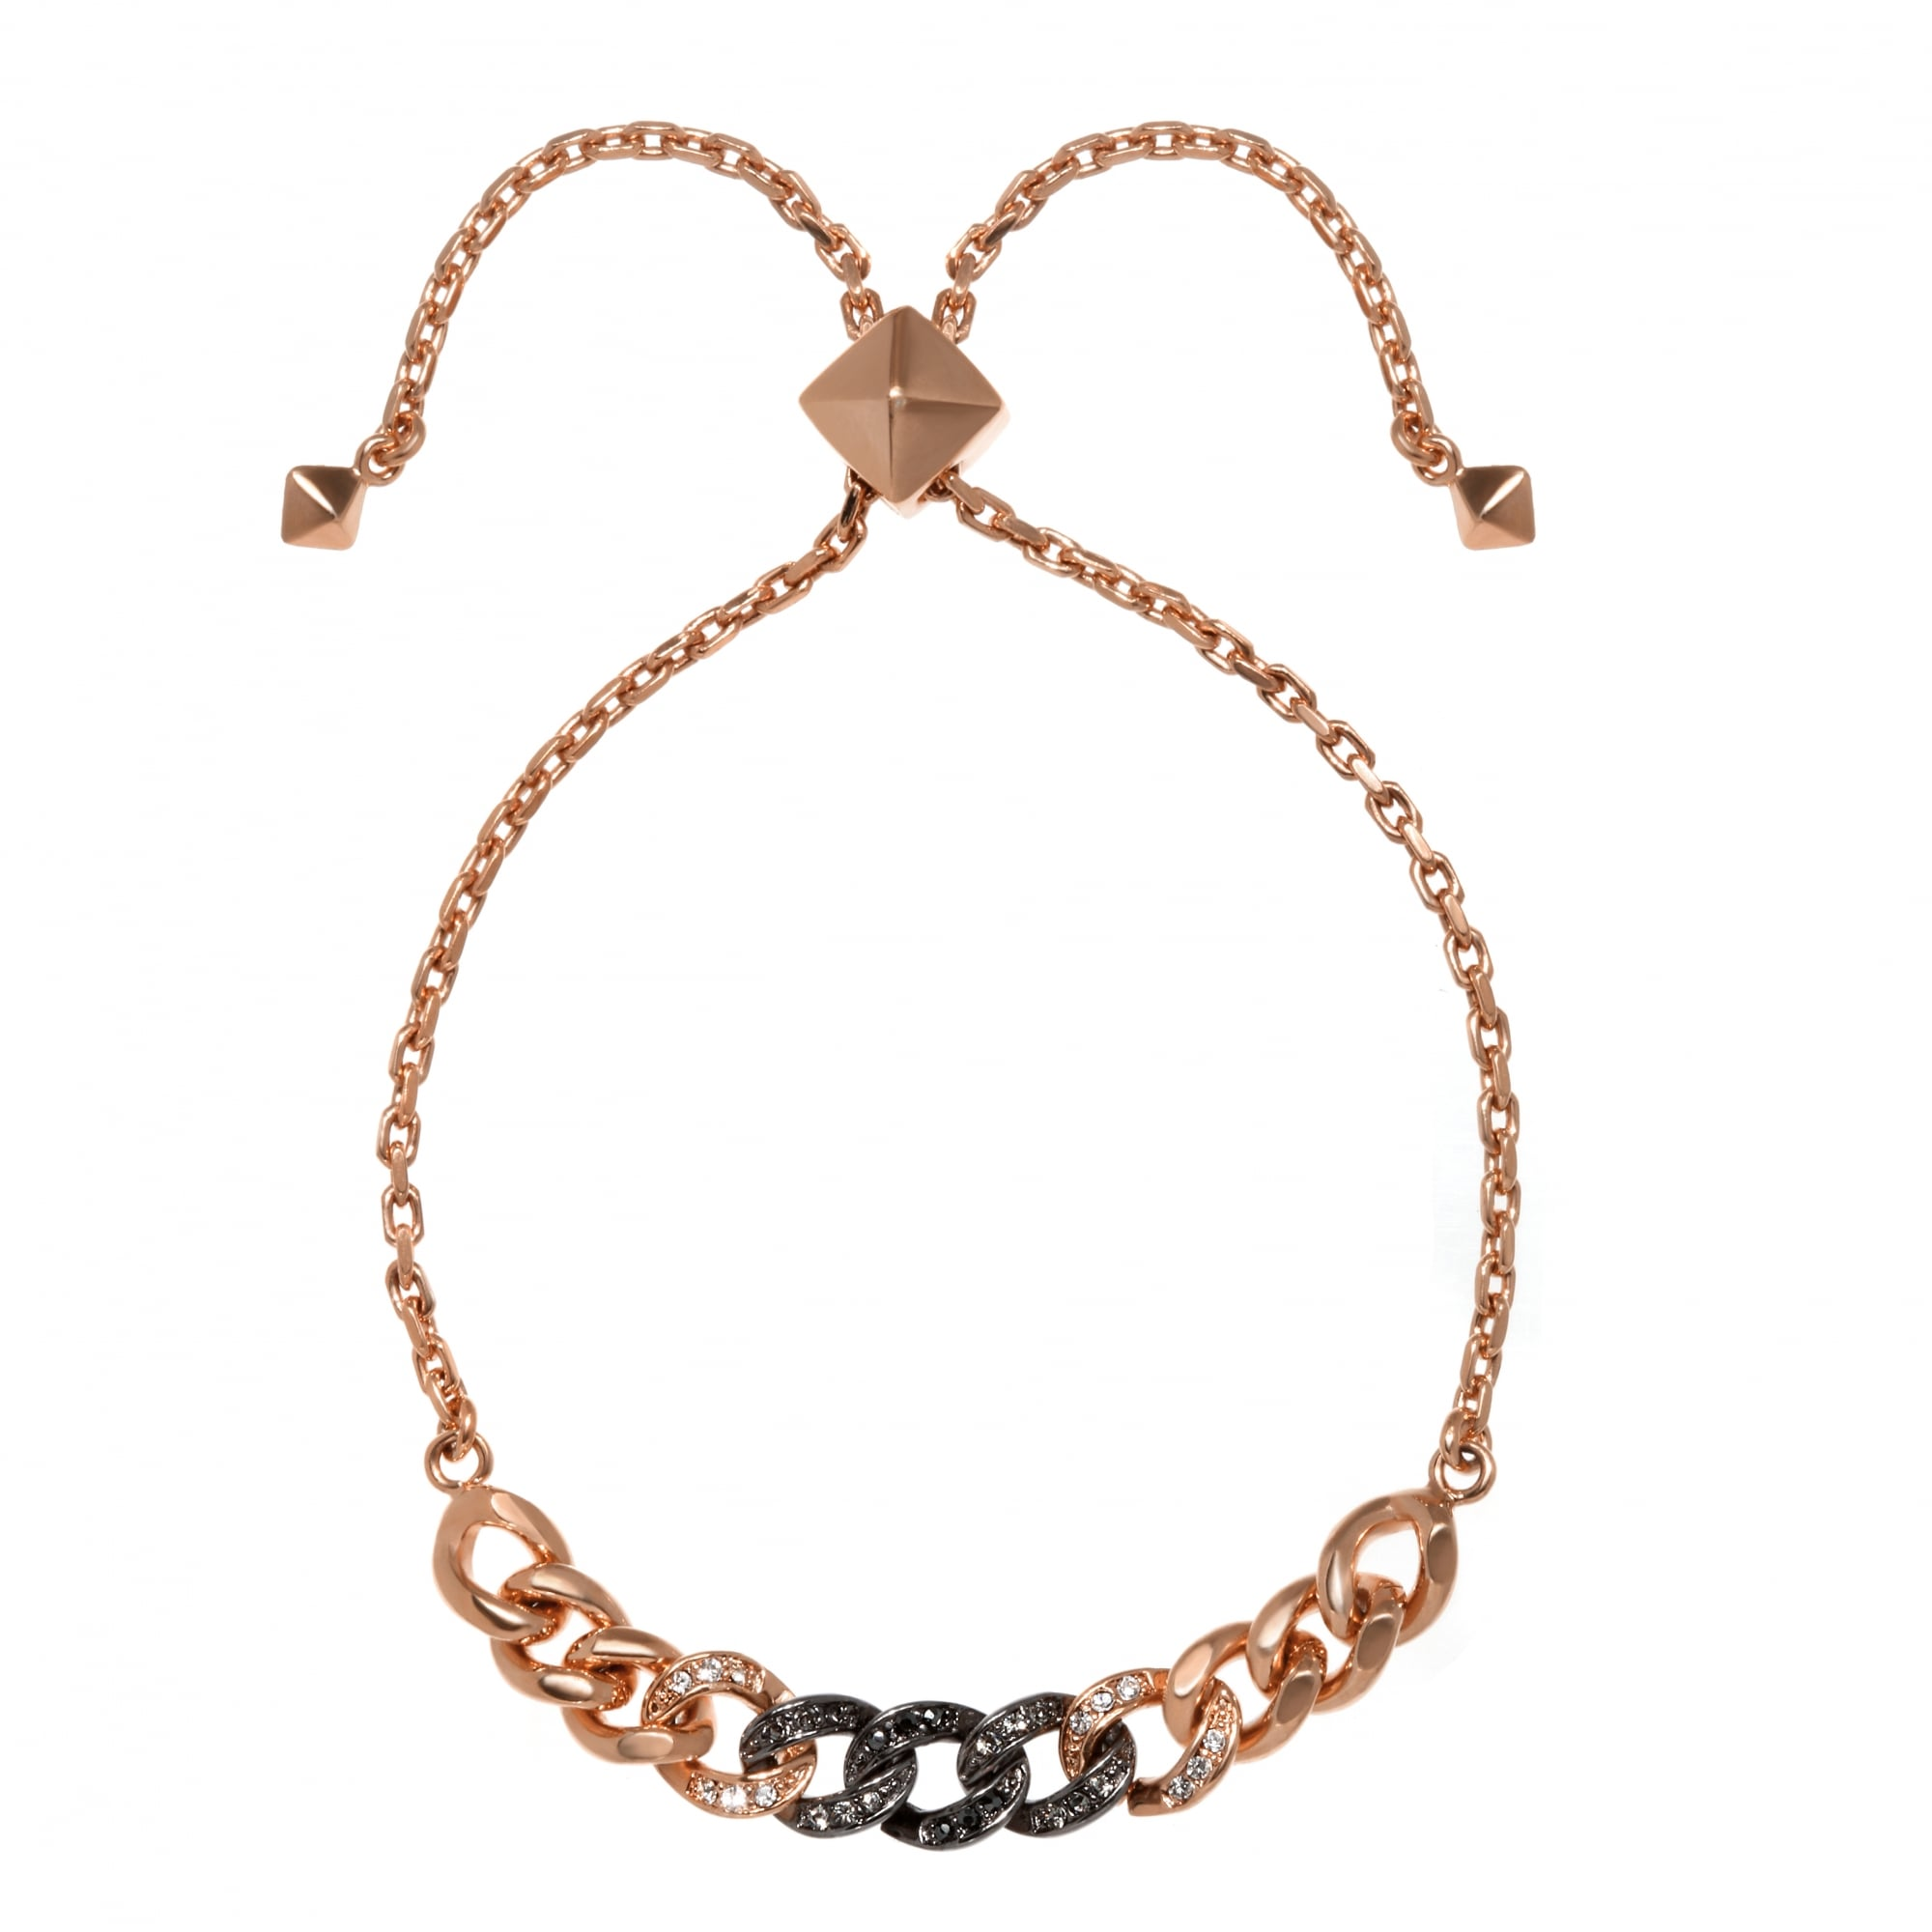 9c5bcda2536a Karl Lagerfeld Ombre Chain Bracelet Created with Swarovski Crystals